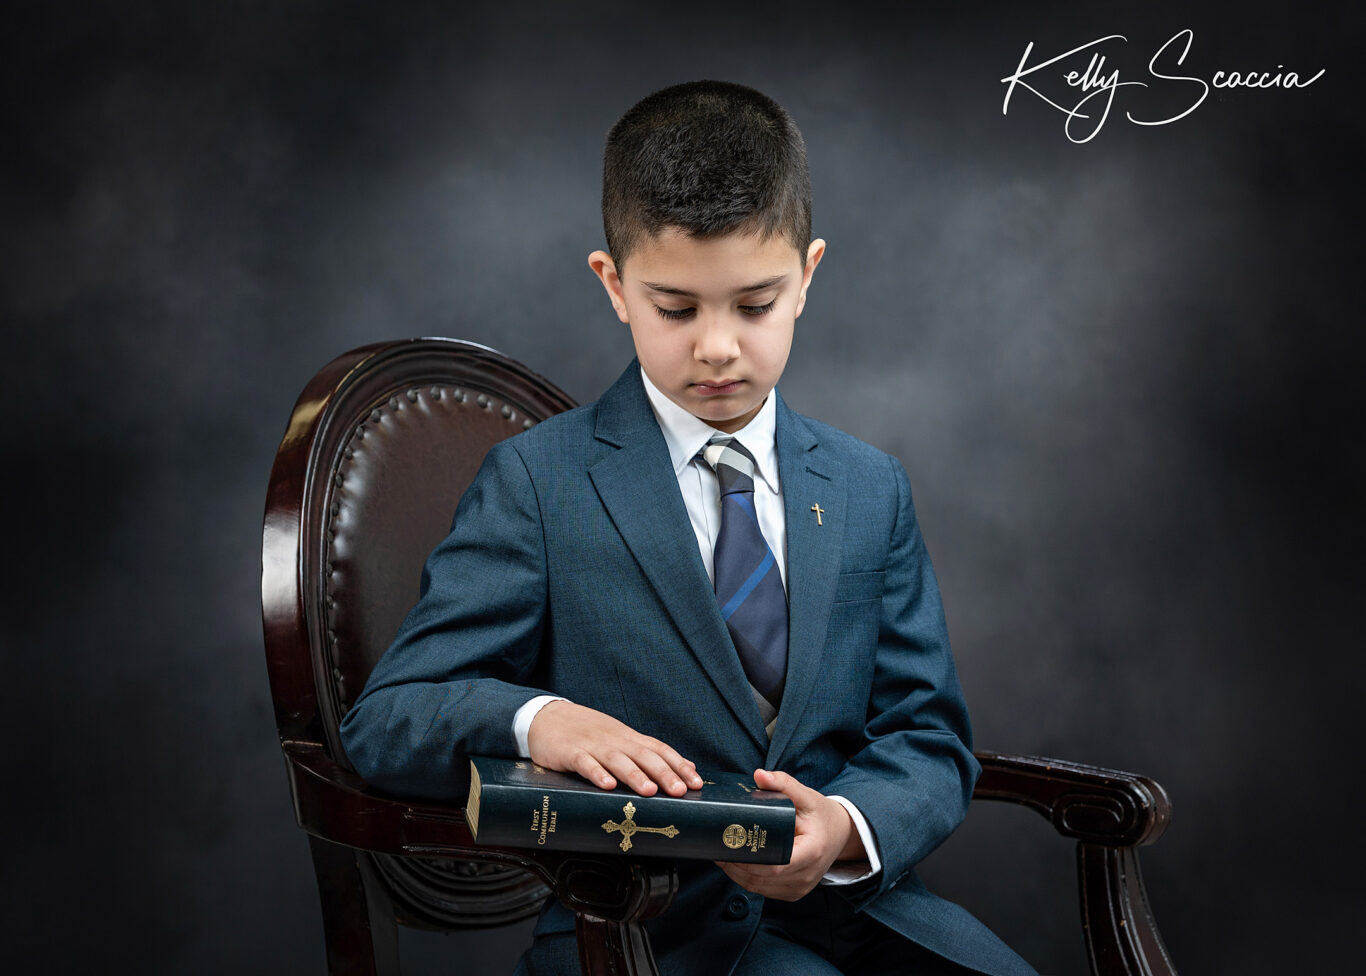 Formal communion boy studio portrait wearing blue suit, holding rosary, serious expression looking at you